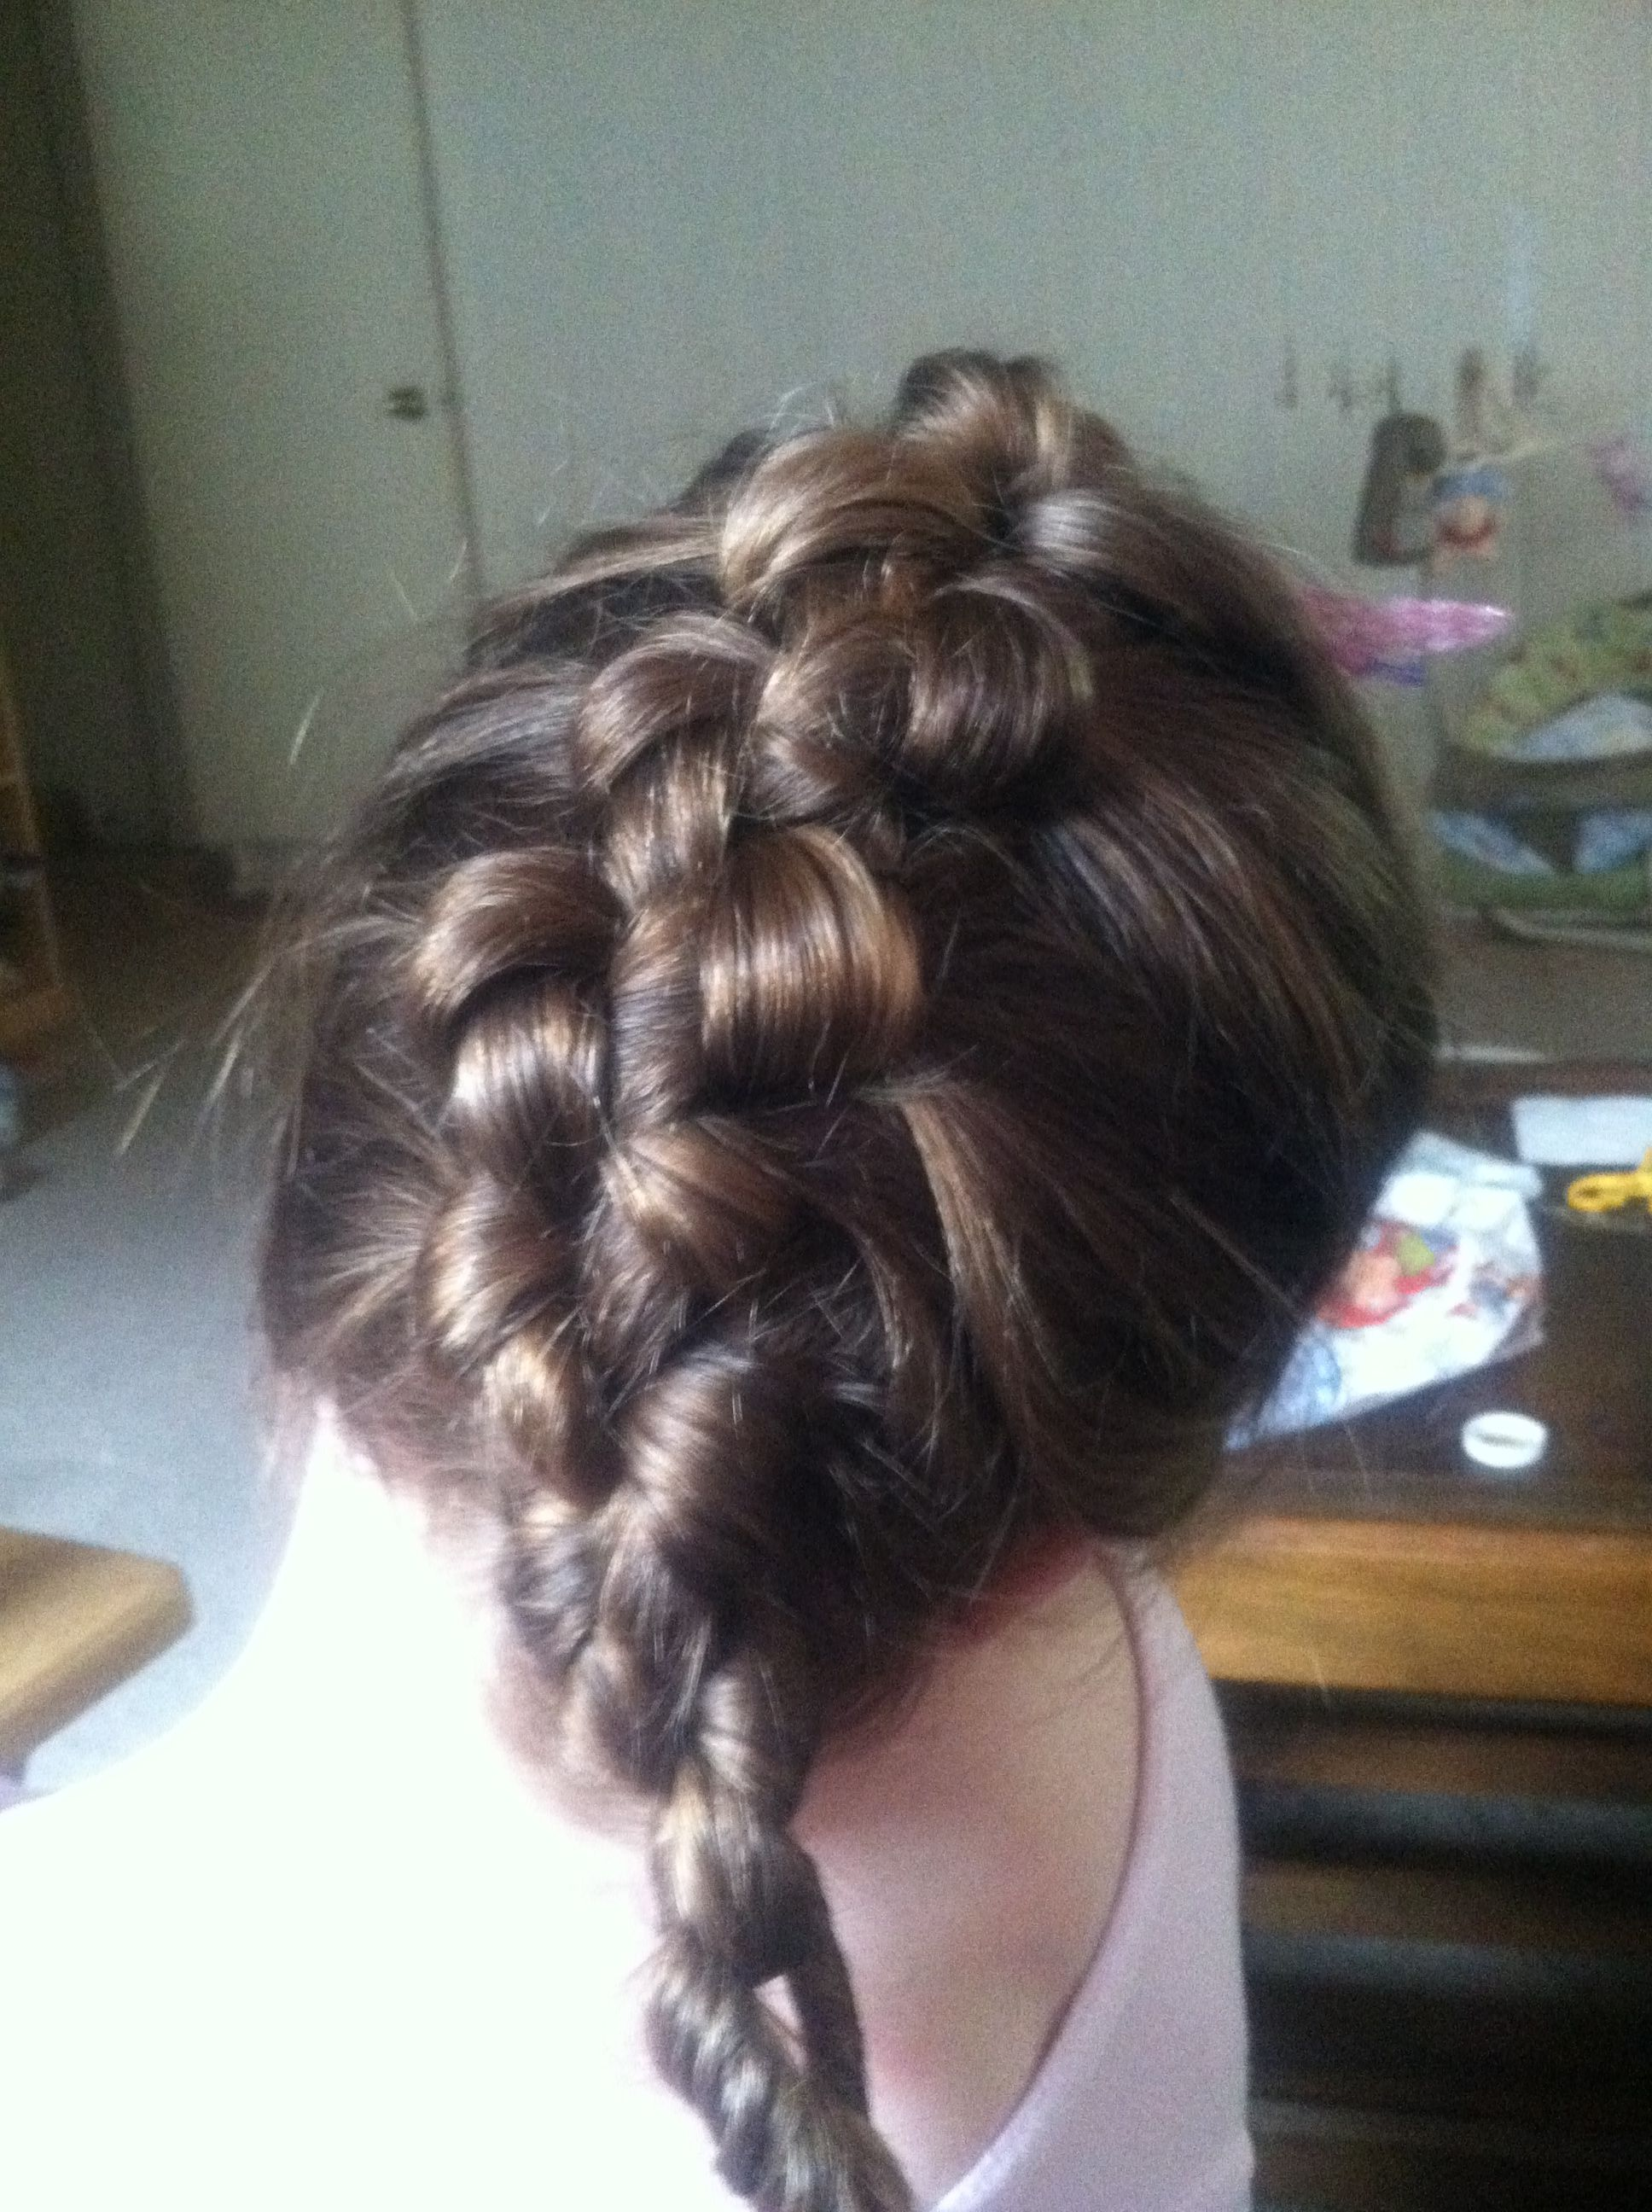 Knotted braid saw on cutegirlshairstyles tried on my daughter